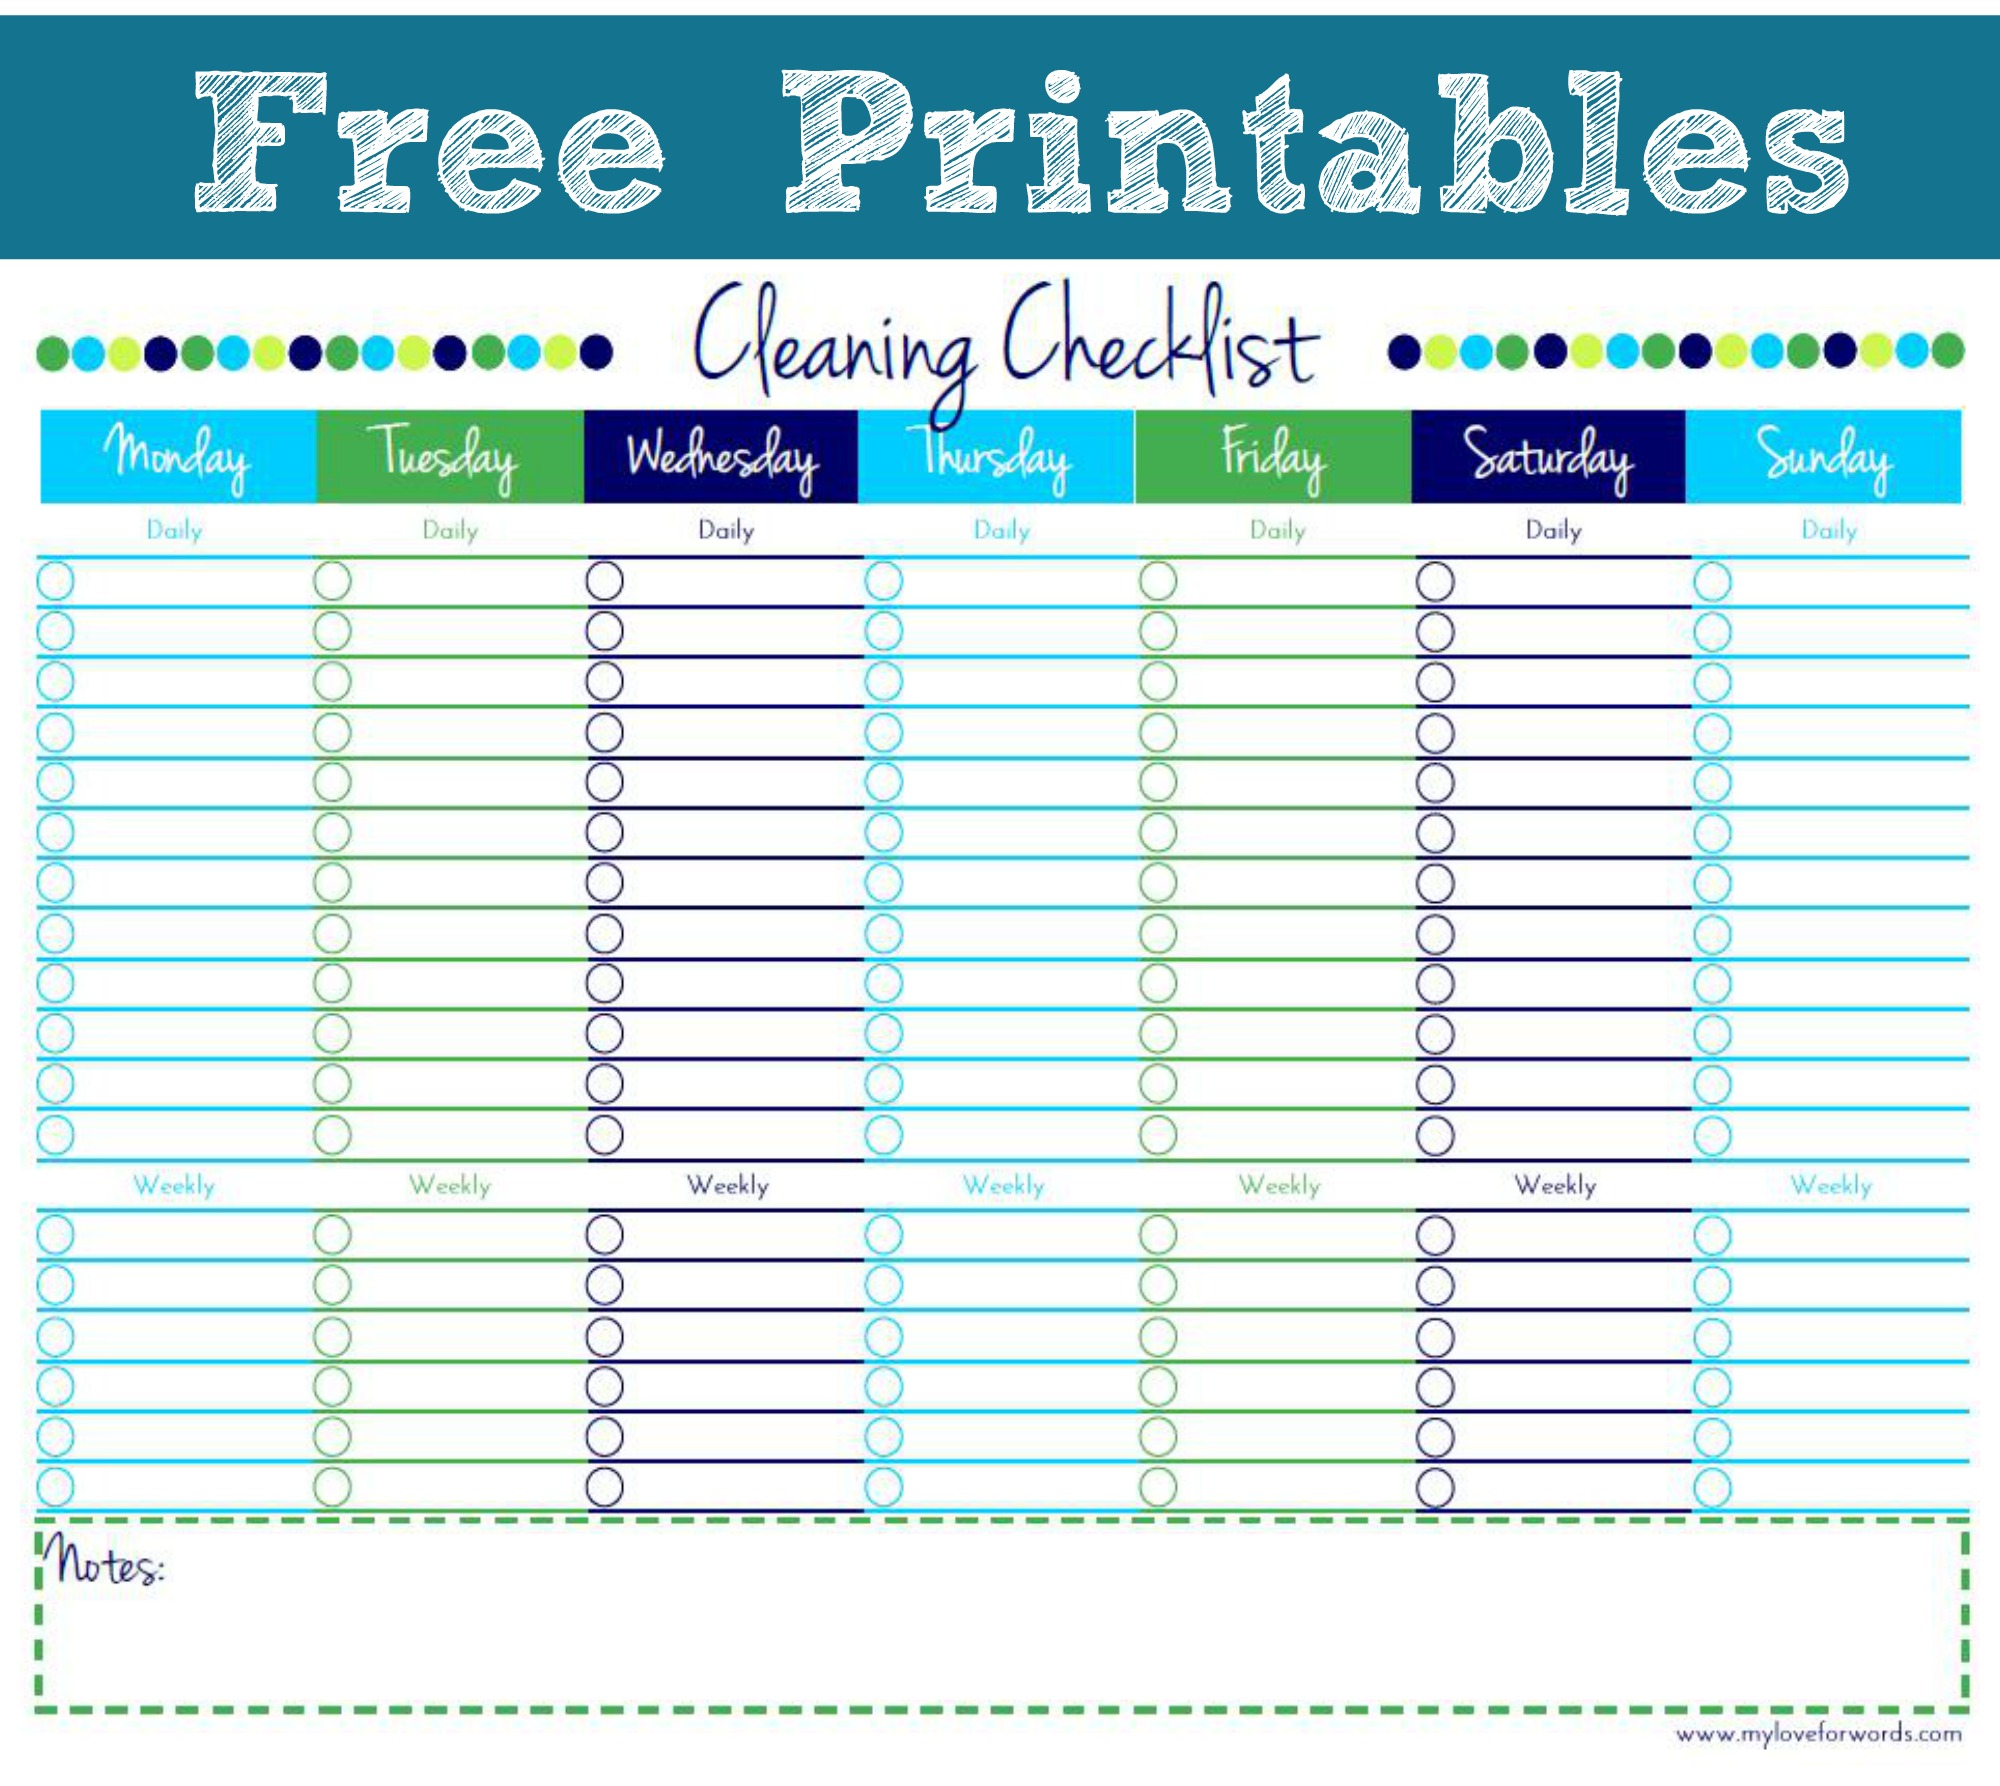 5 Images of Free Printable Checklists